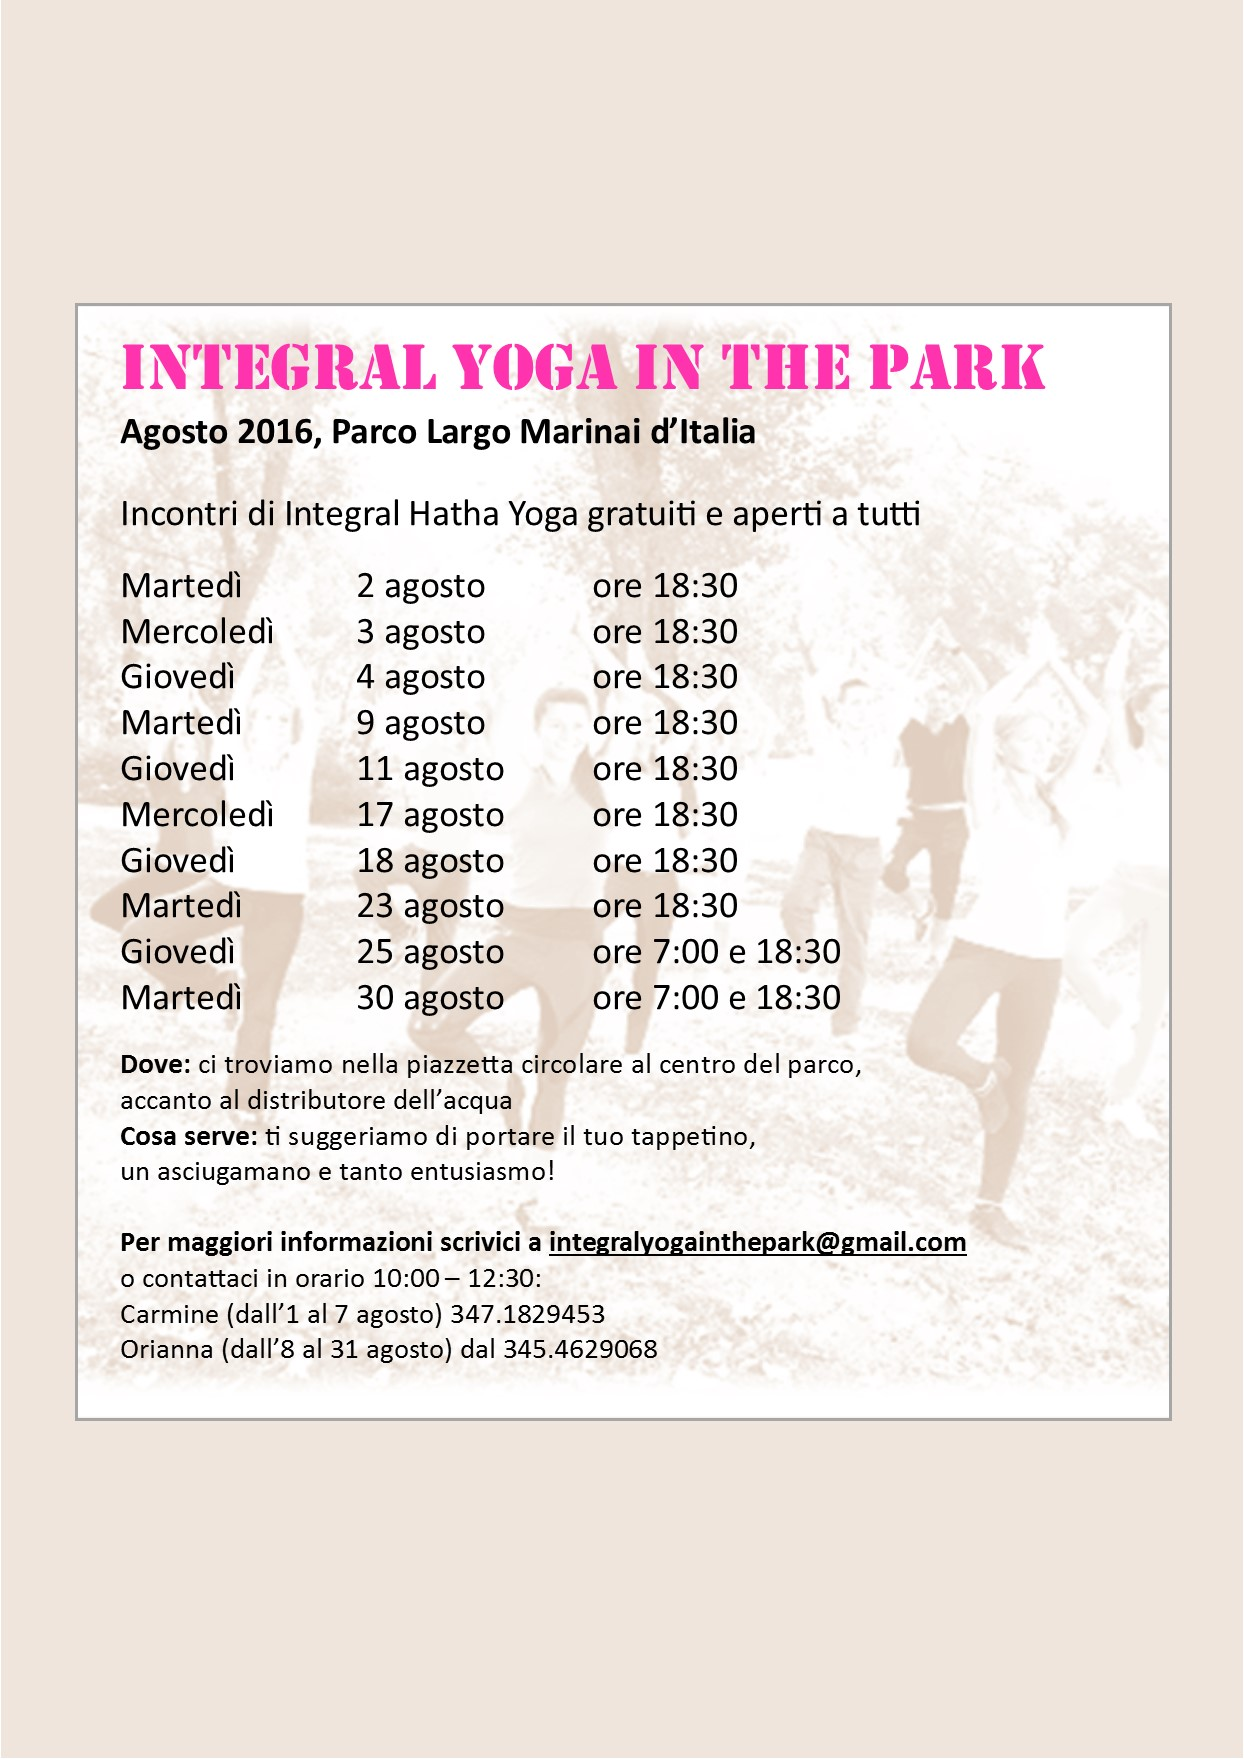 IntegralYogaInthePark2016